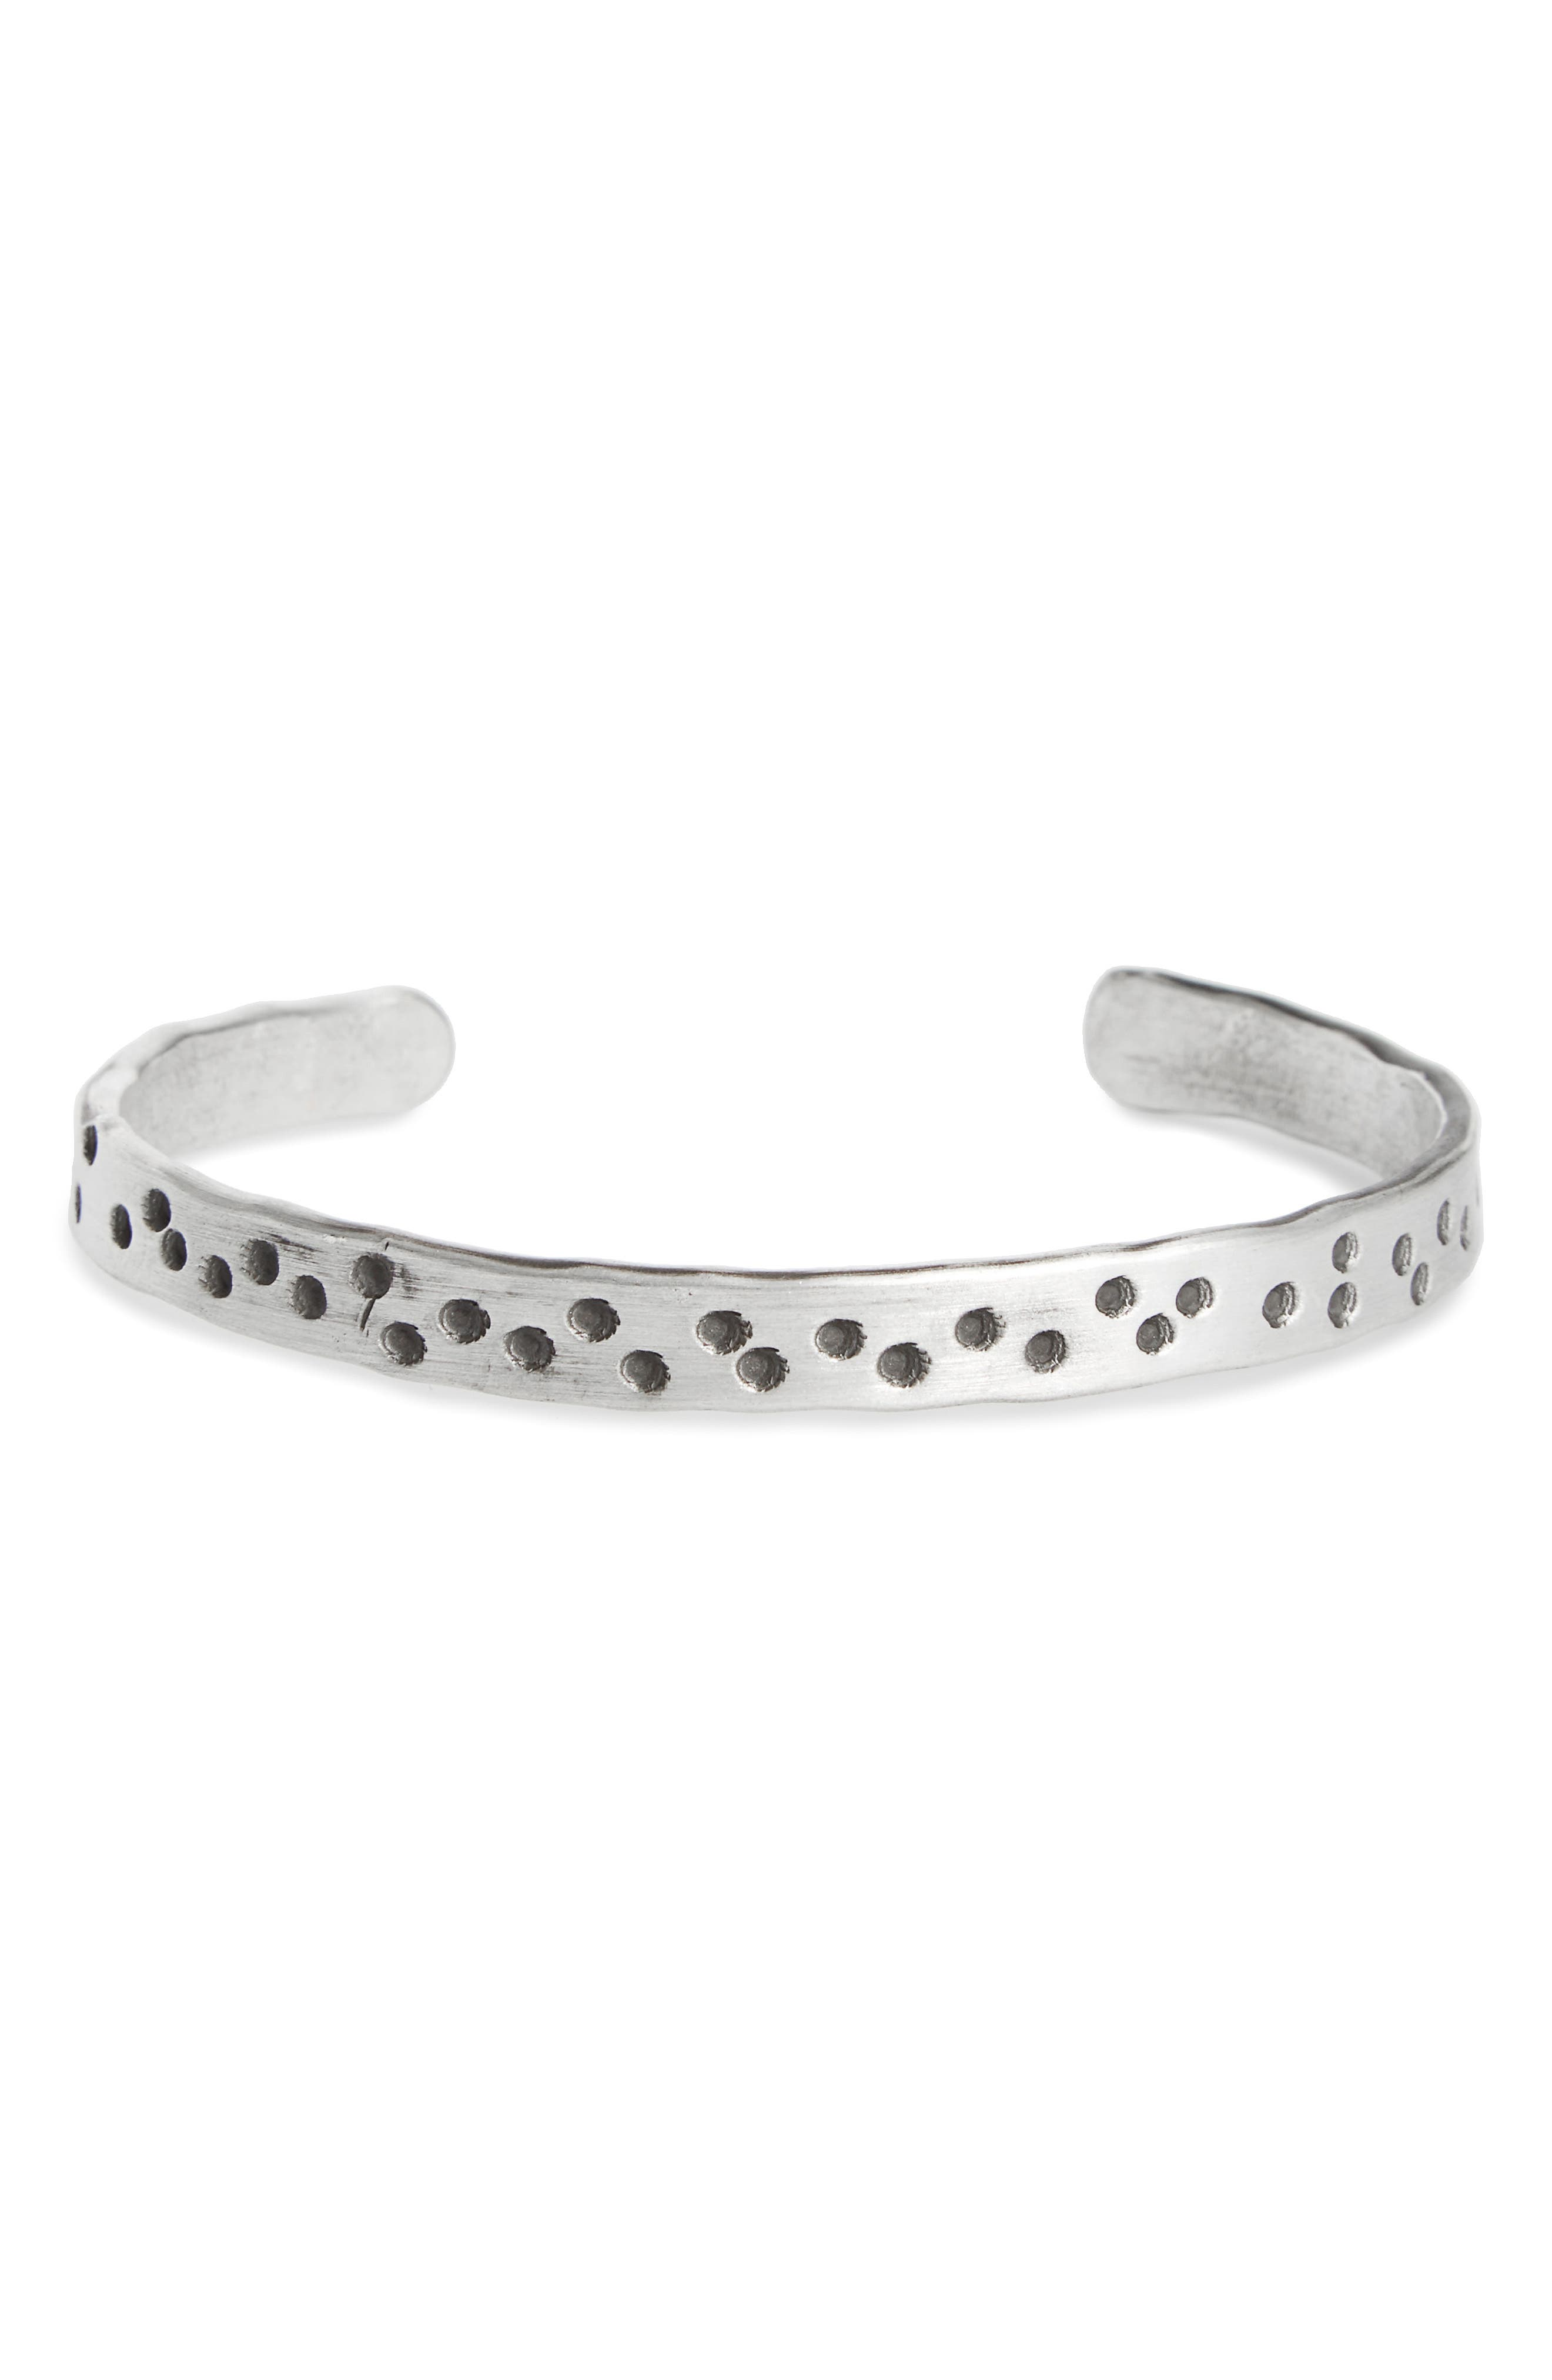 Cause & Effect Sterling Silver Cuff Bracelet,                             Main thumbnail 1, color,                             Silver